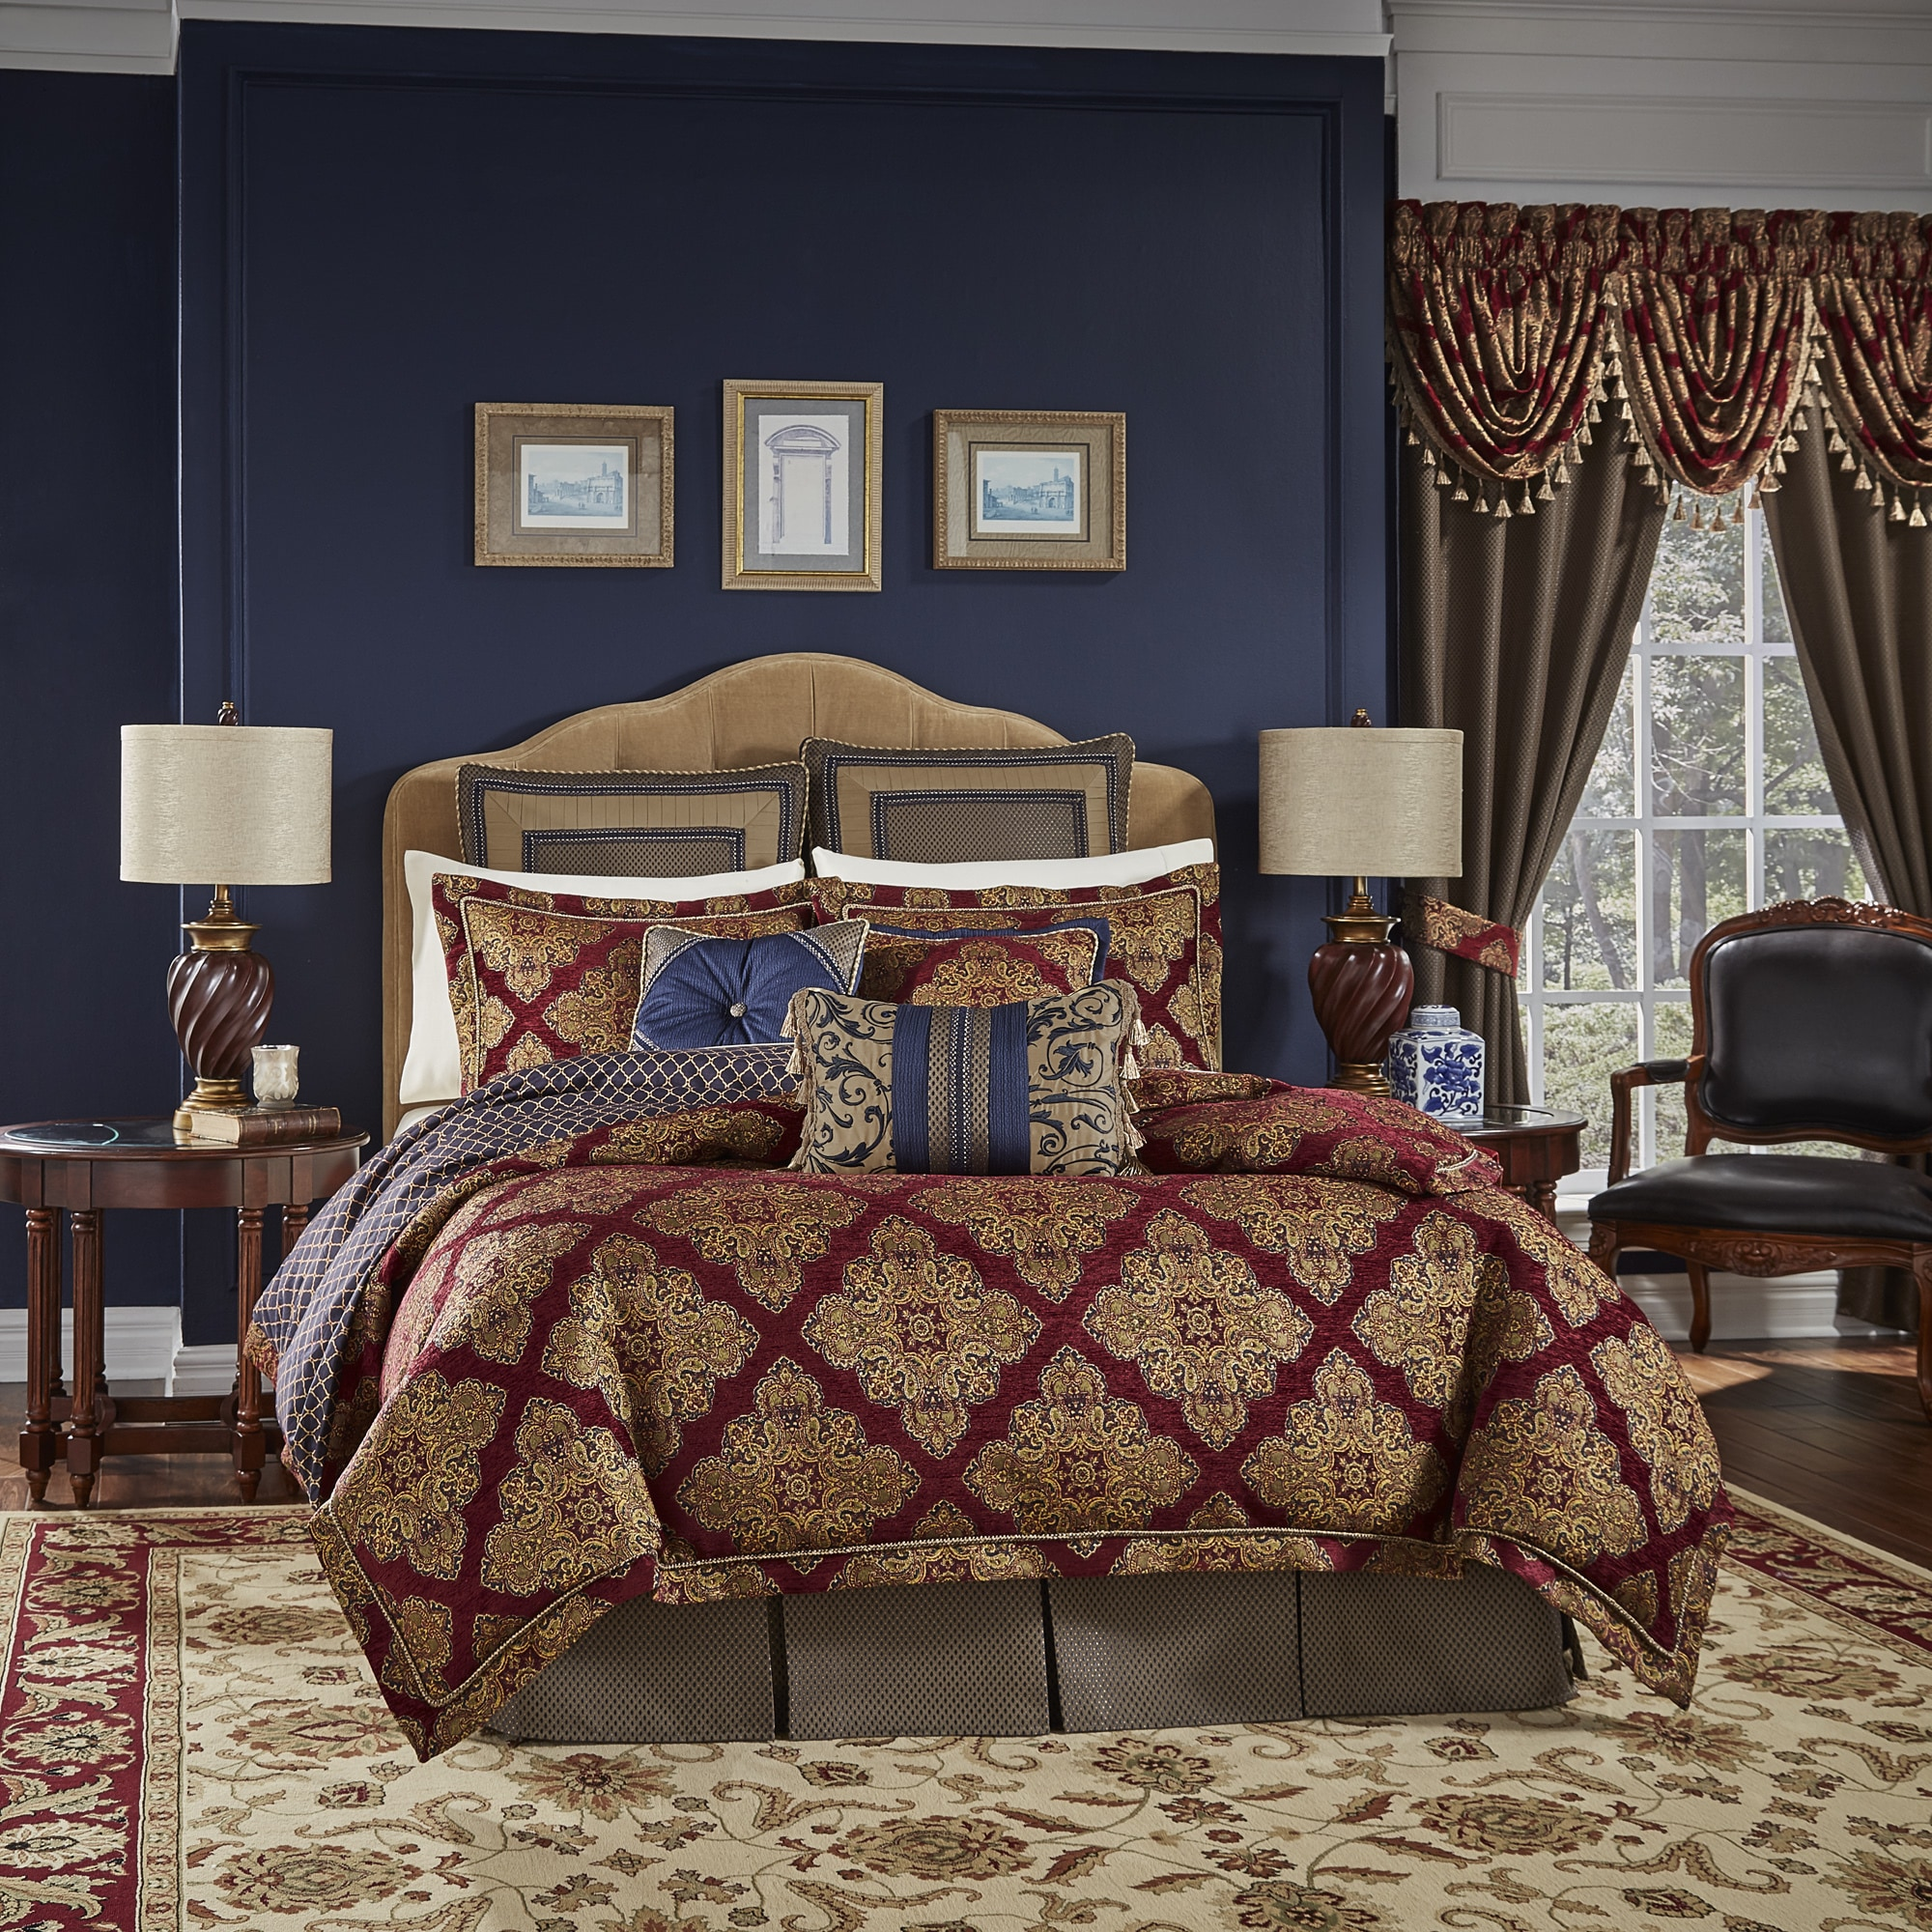 hei product for classics upc set pc wid luxembourg jacquard image croscill comforter sharpen op sets